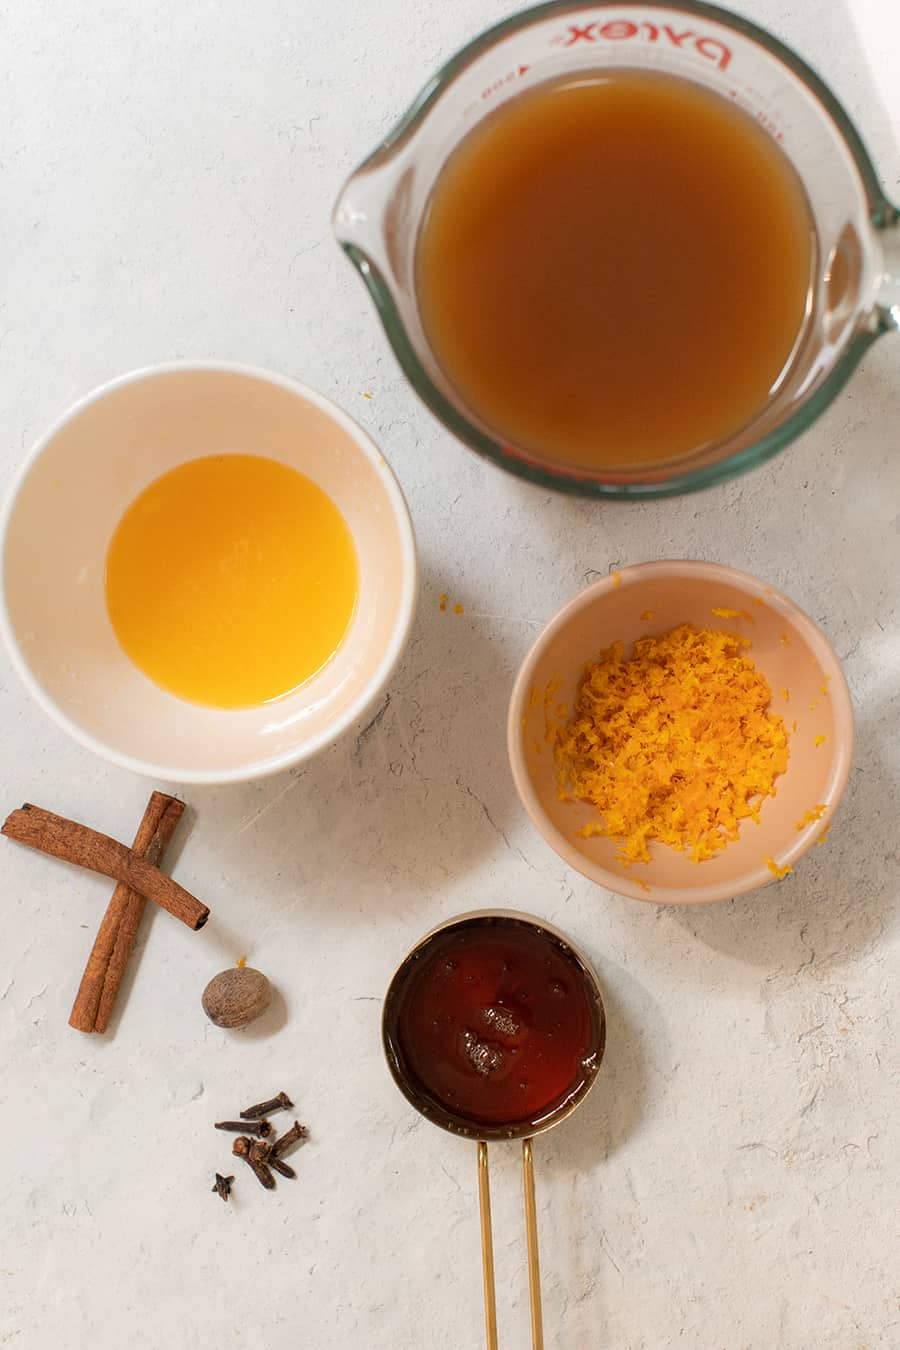 Ingredients to make mulled wine